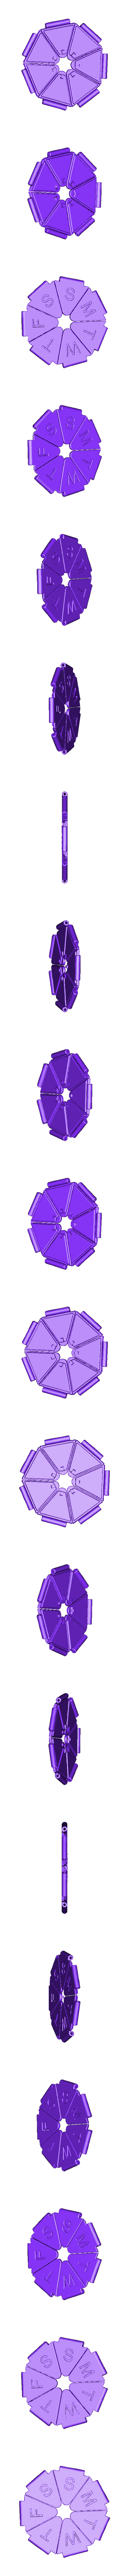 Lid_Group.stl Download free STL file Pill Box weekly • Object to 3D print, Oggie